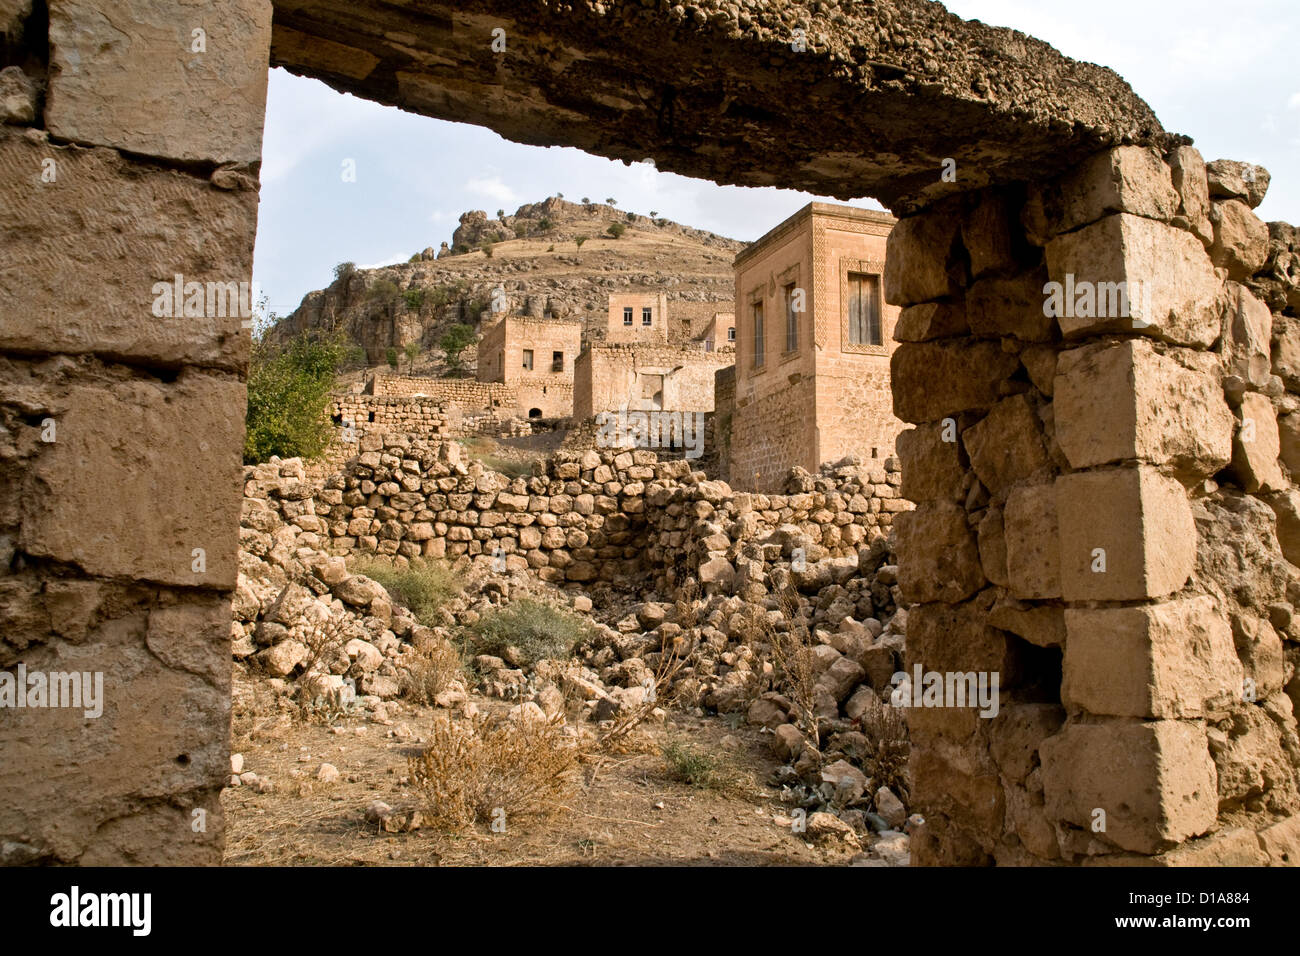 Honey-coloured stone houses in the ancient village of Dereici, in the Syriac Tur Abdin region of southeastern Turkey. - Stock Image